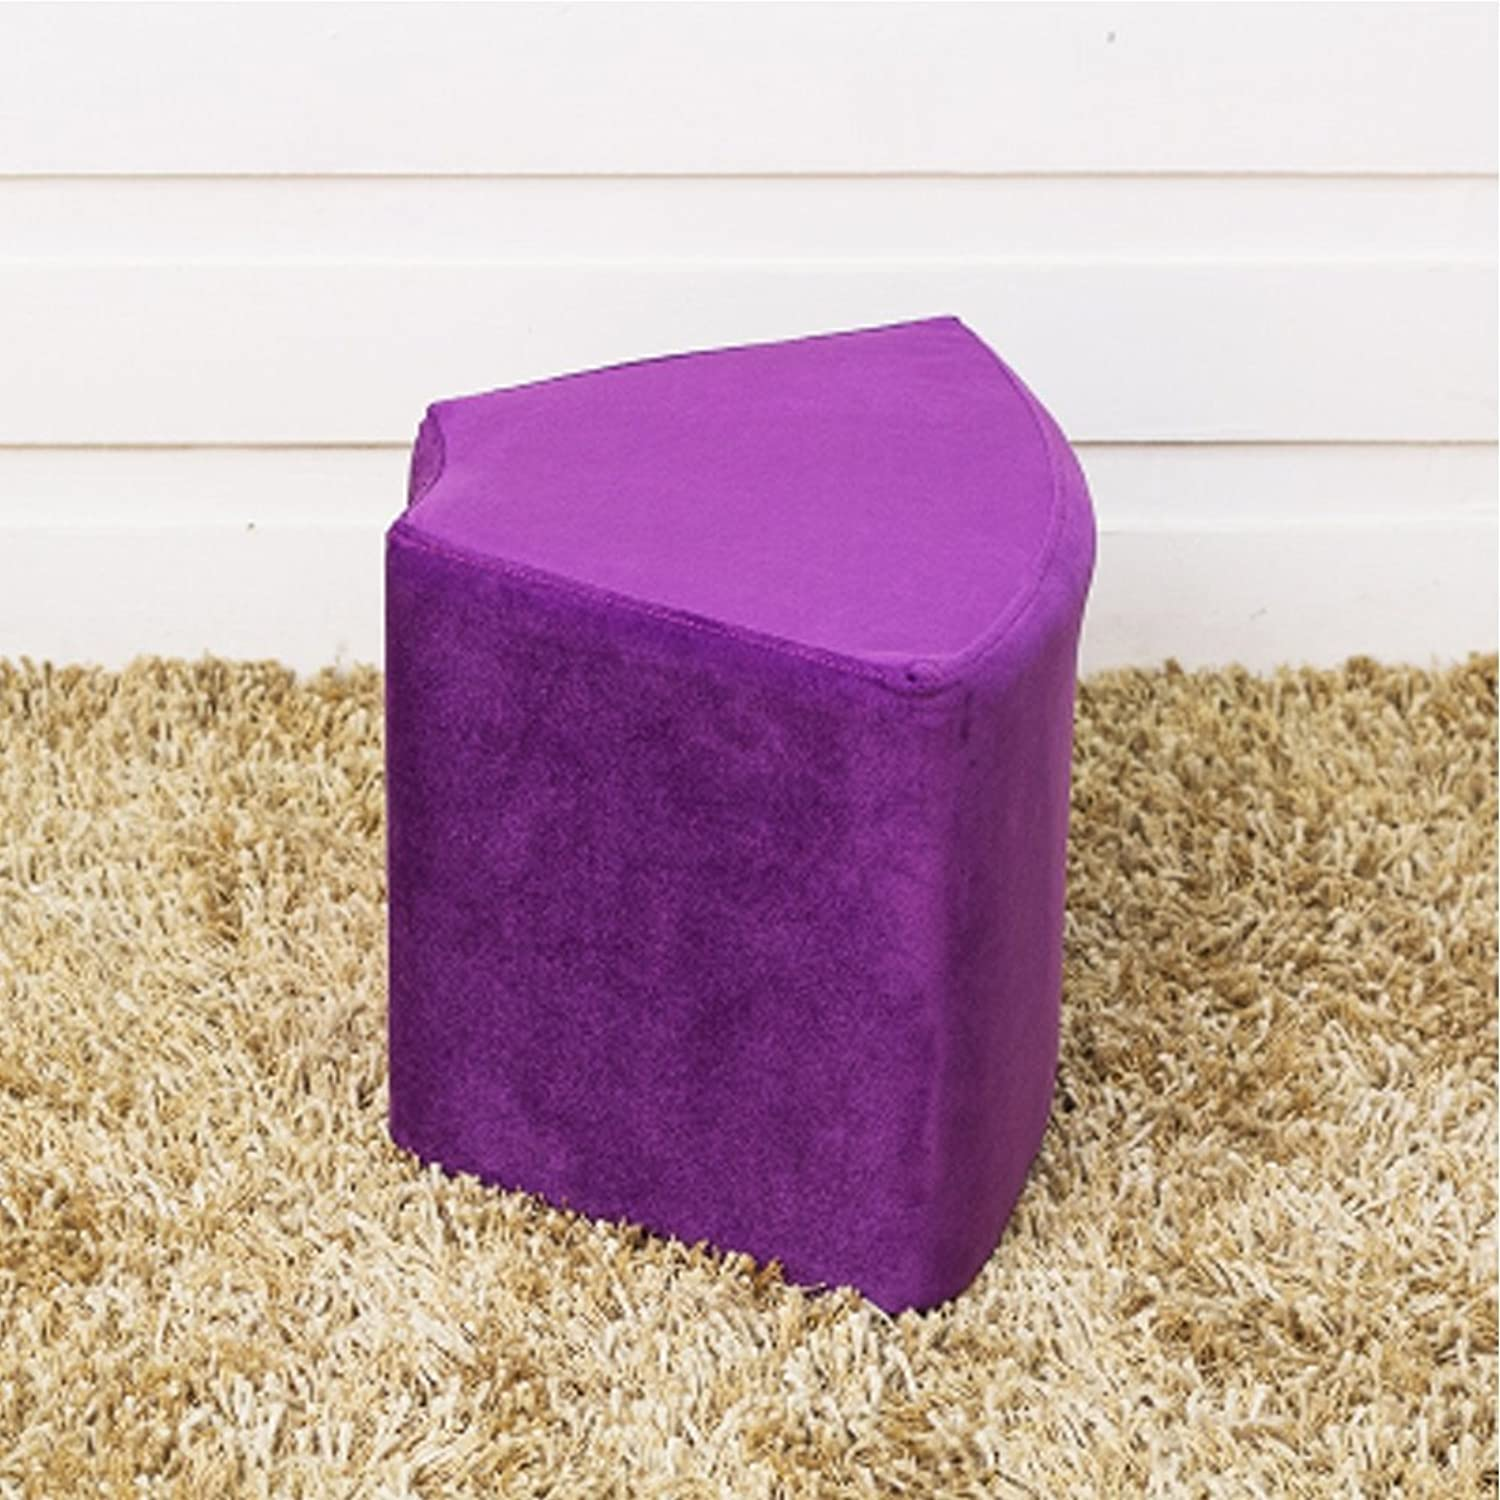 Fabric Stool Creative Sofa Bench Solid Wood shoes Stool colorful Stool(41x33x27cm) 0520 (color   Purple)